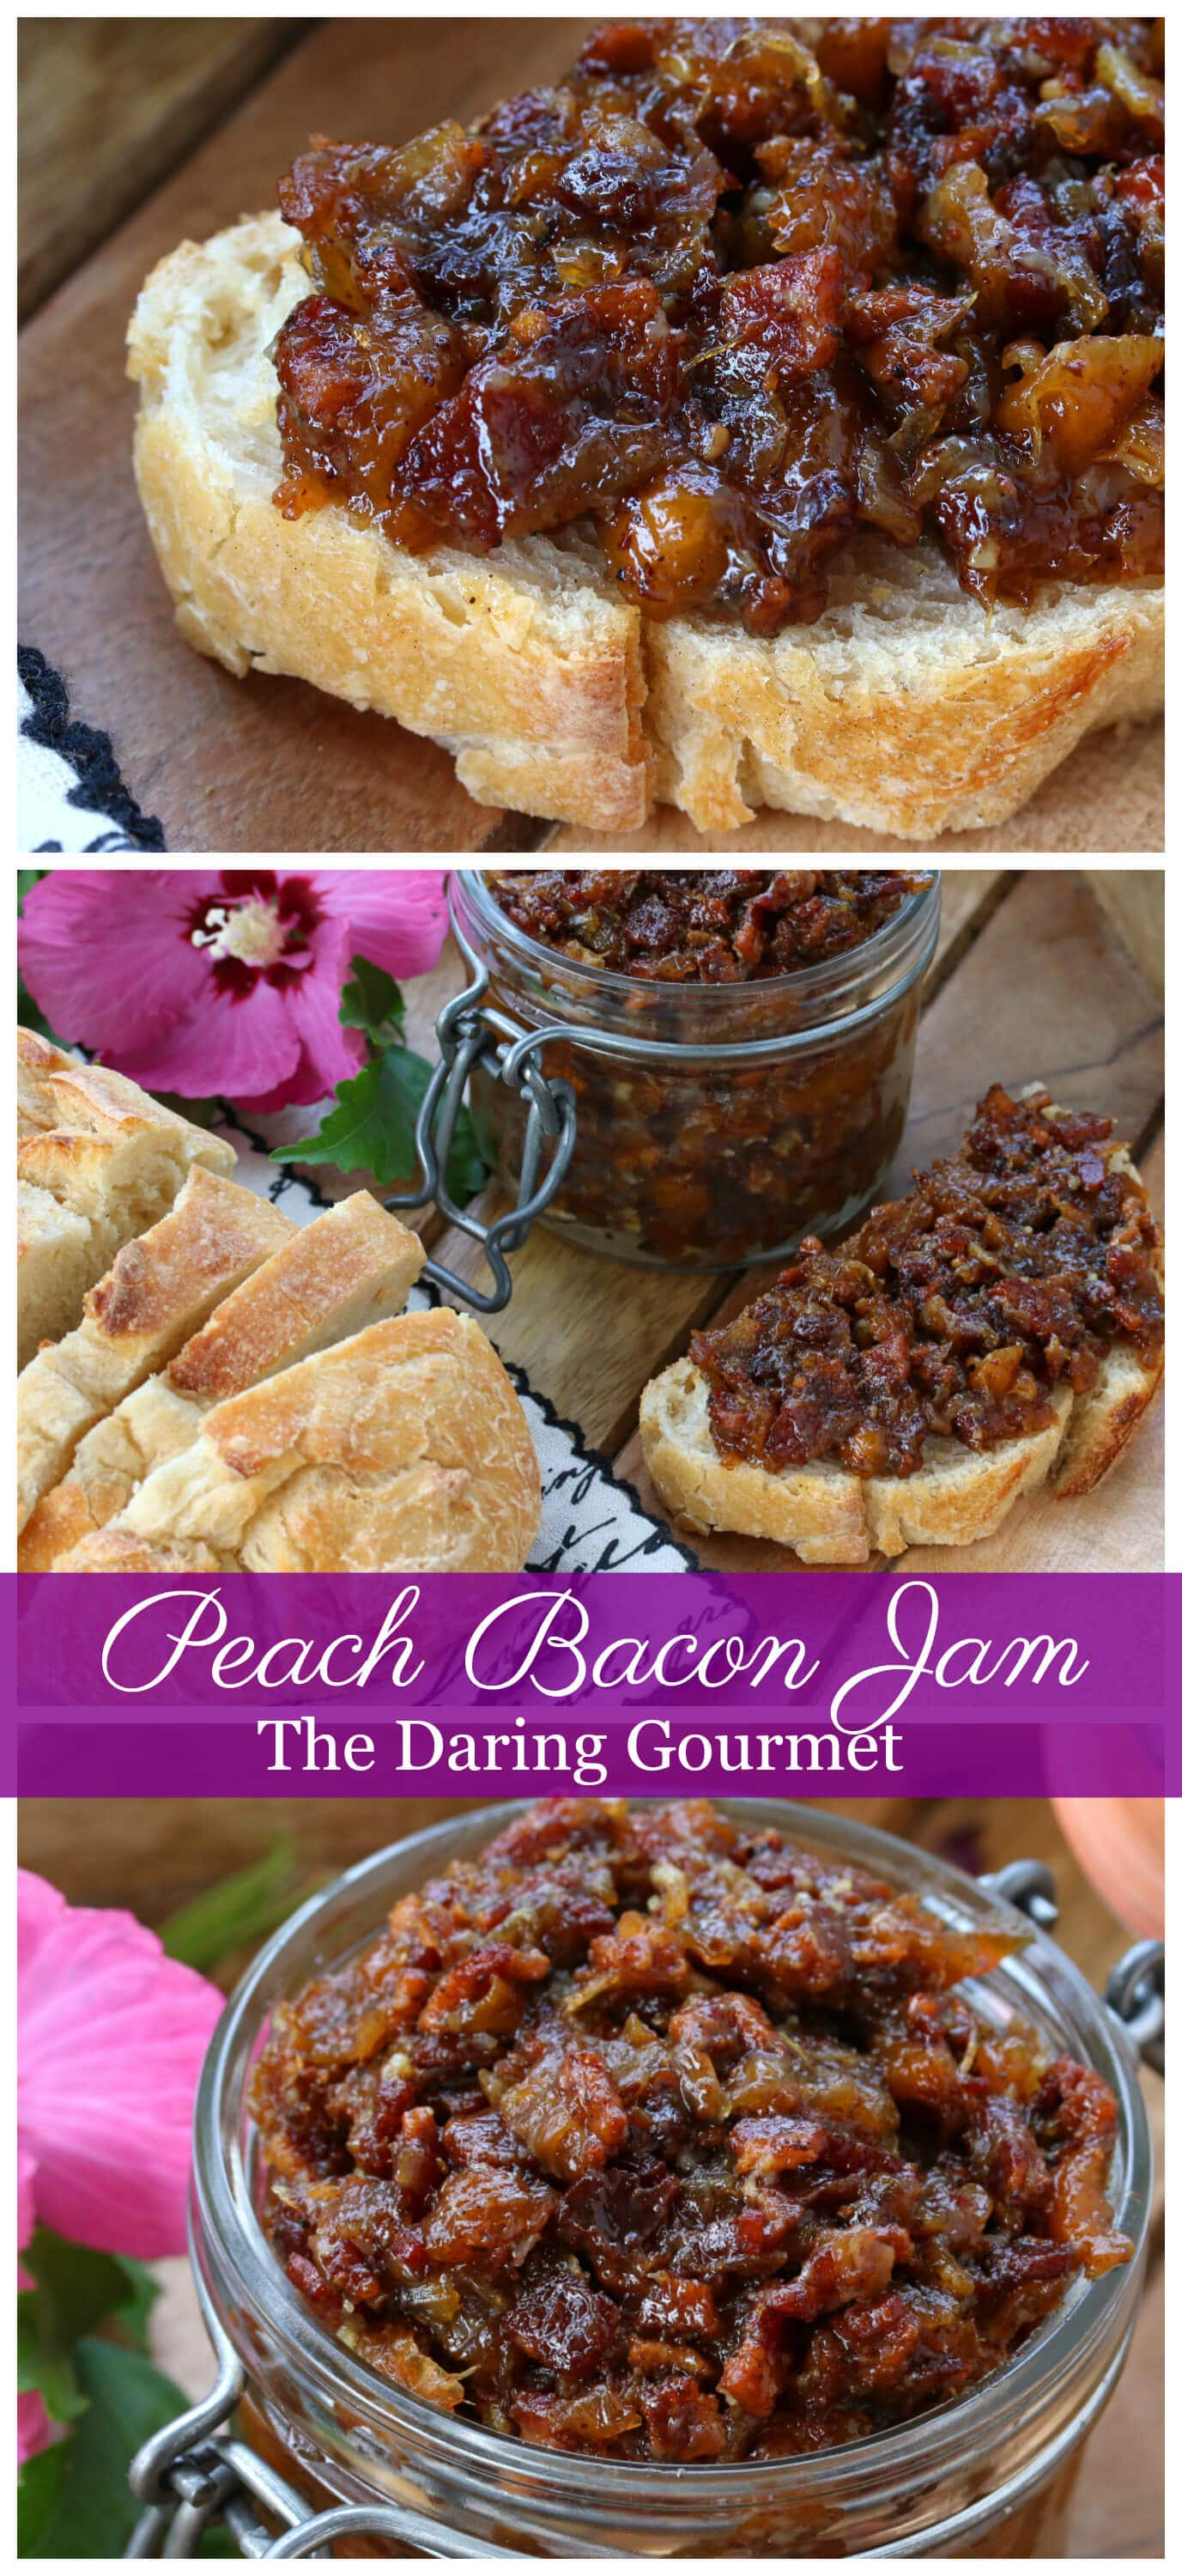 peach bacon jam recipe entertaining hors d'oeuvres entertaining appetizer caramelized onions thyme spread bread condiment